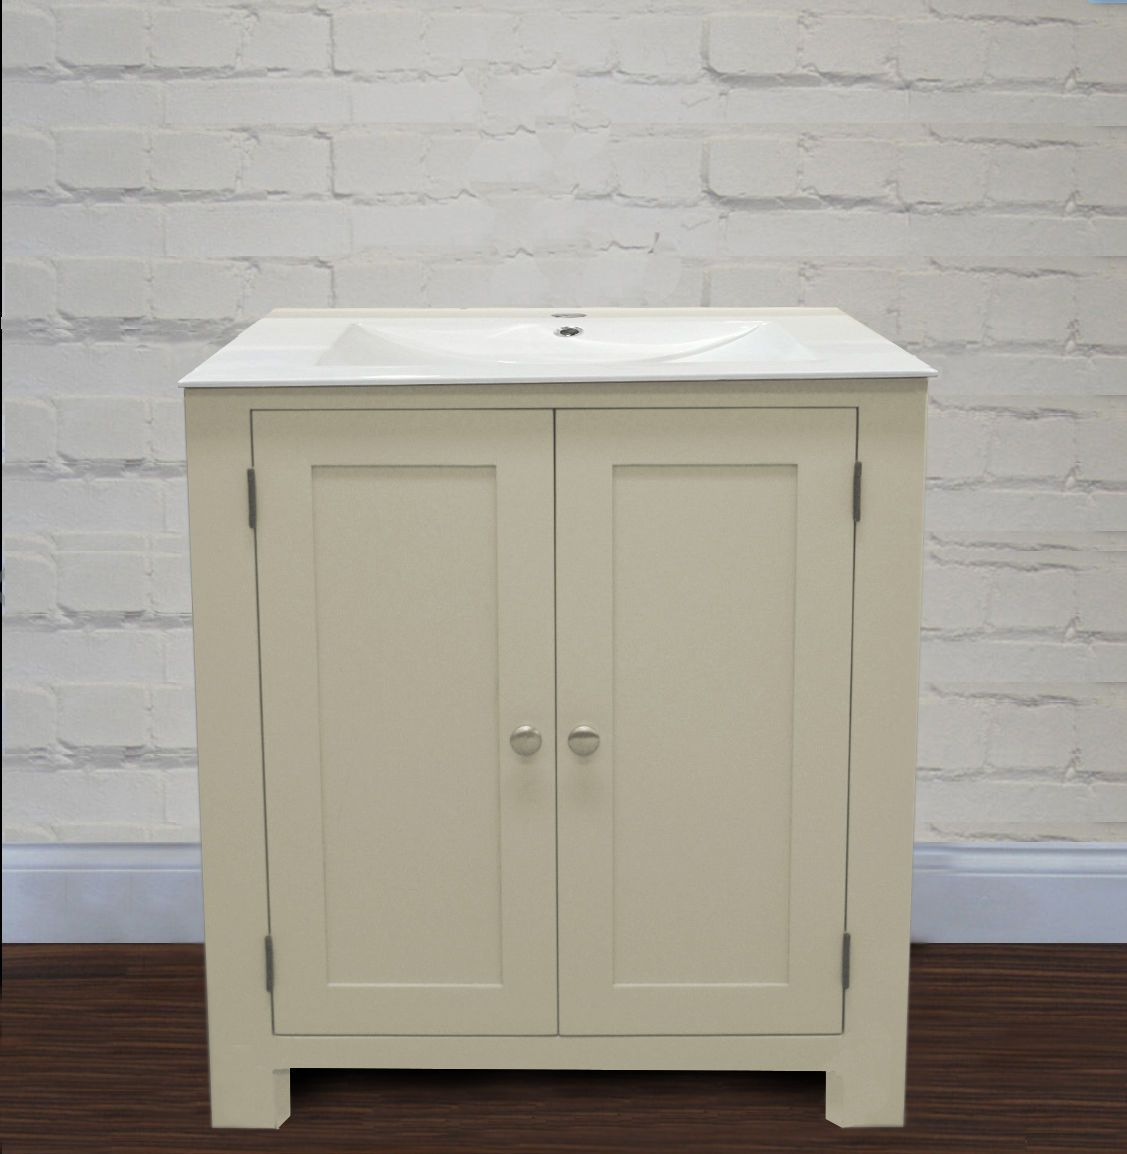 Ebay Bathroom Cabinets Freestanding 600 Wide Painted Vanity Unit Wash Stand Cabinet With